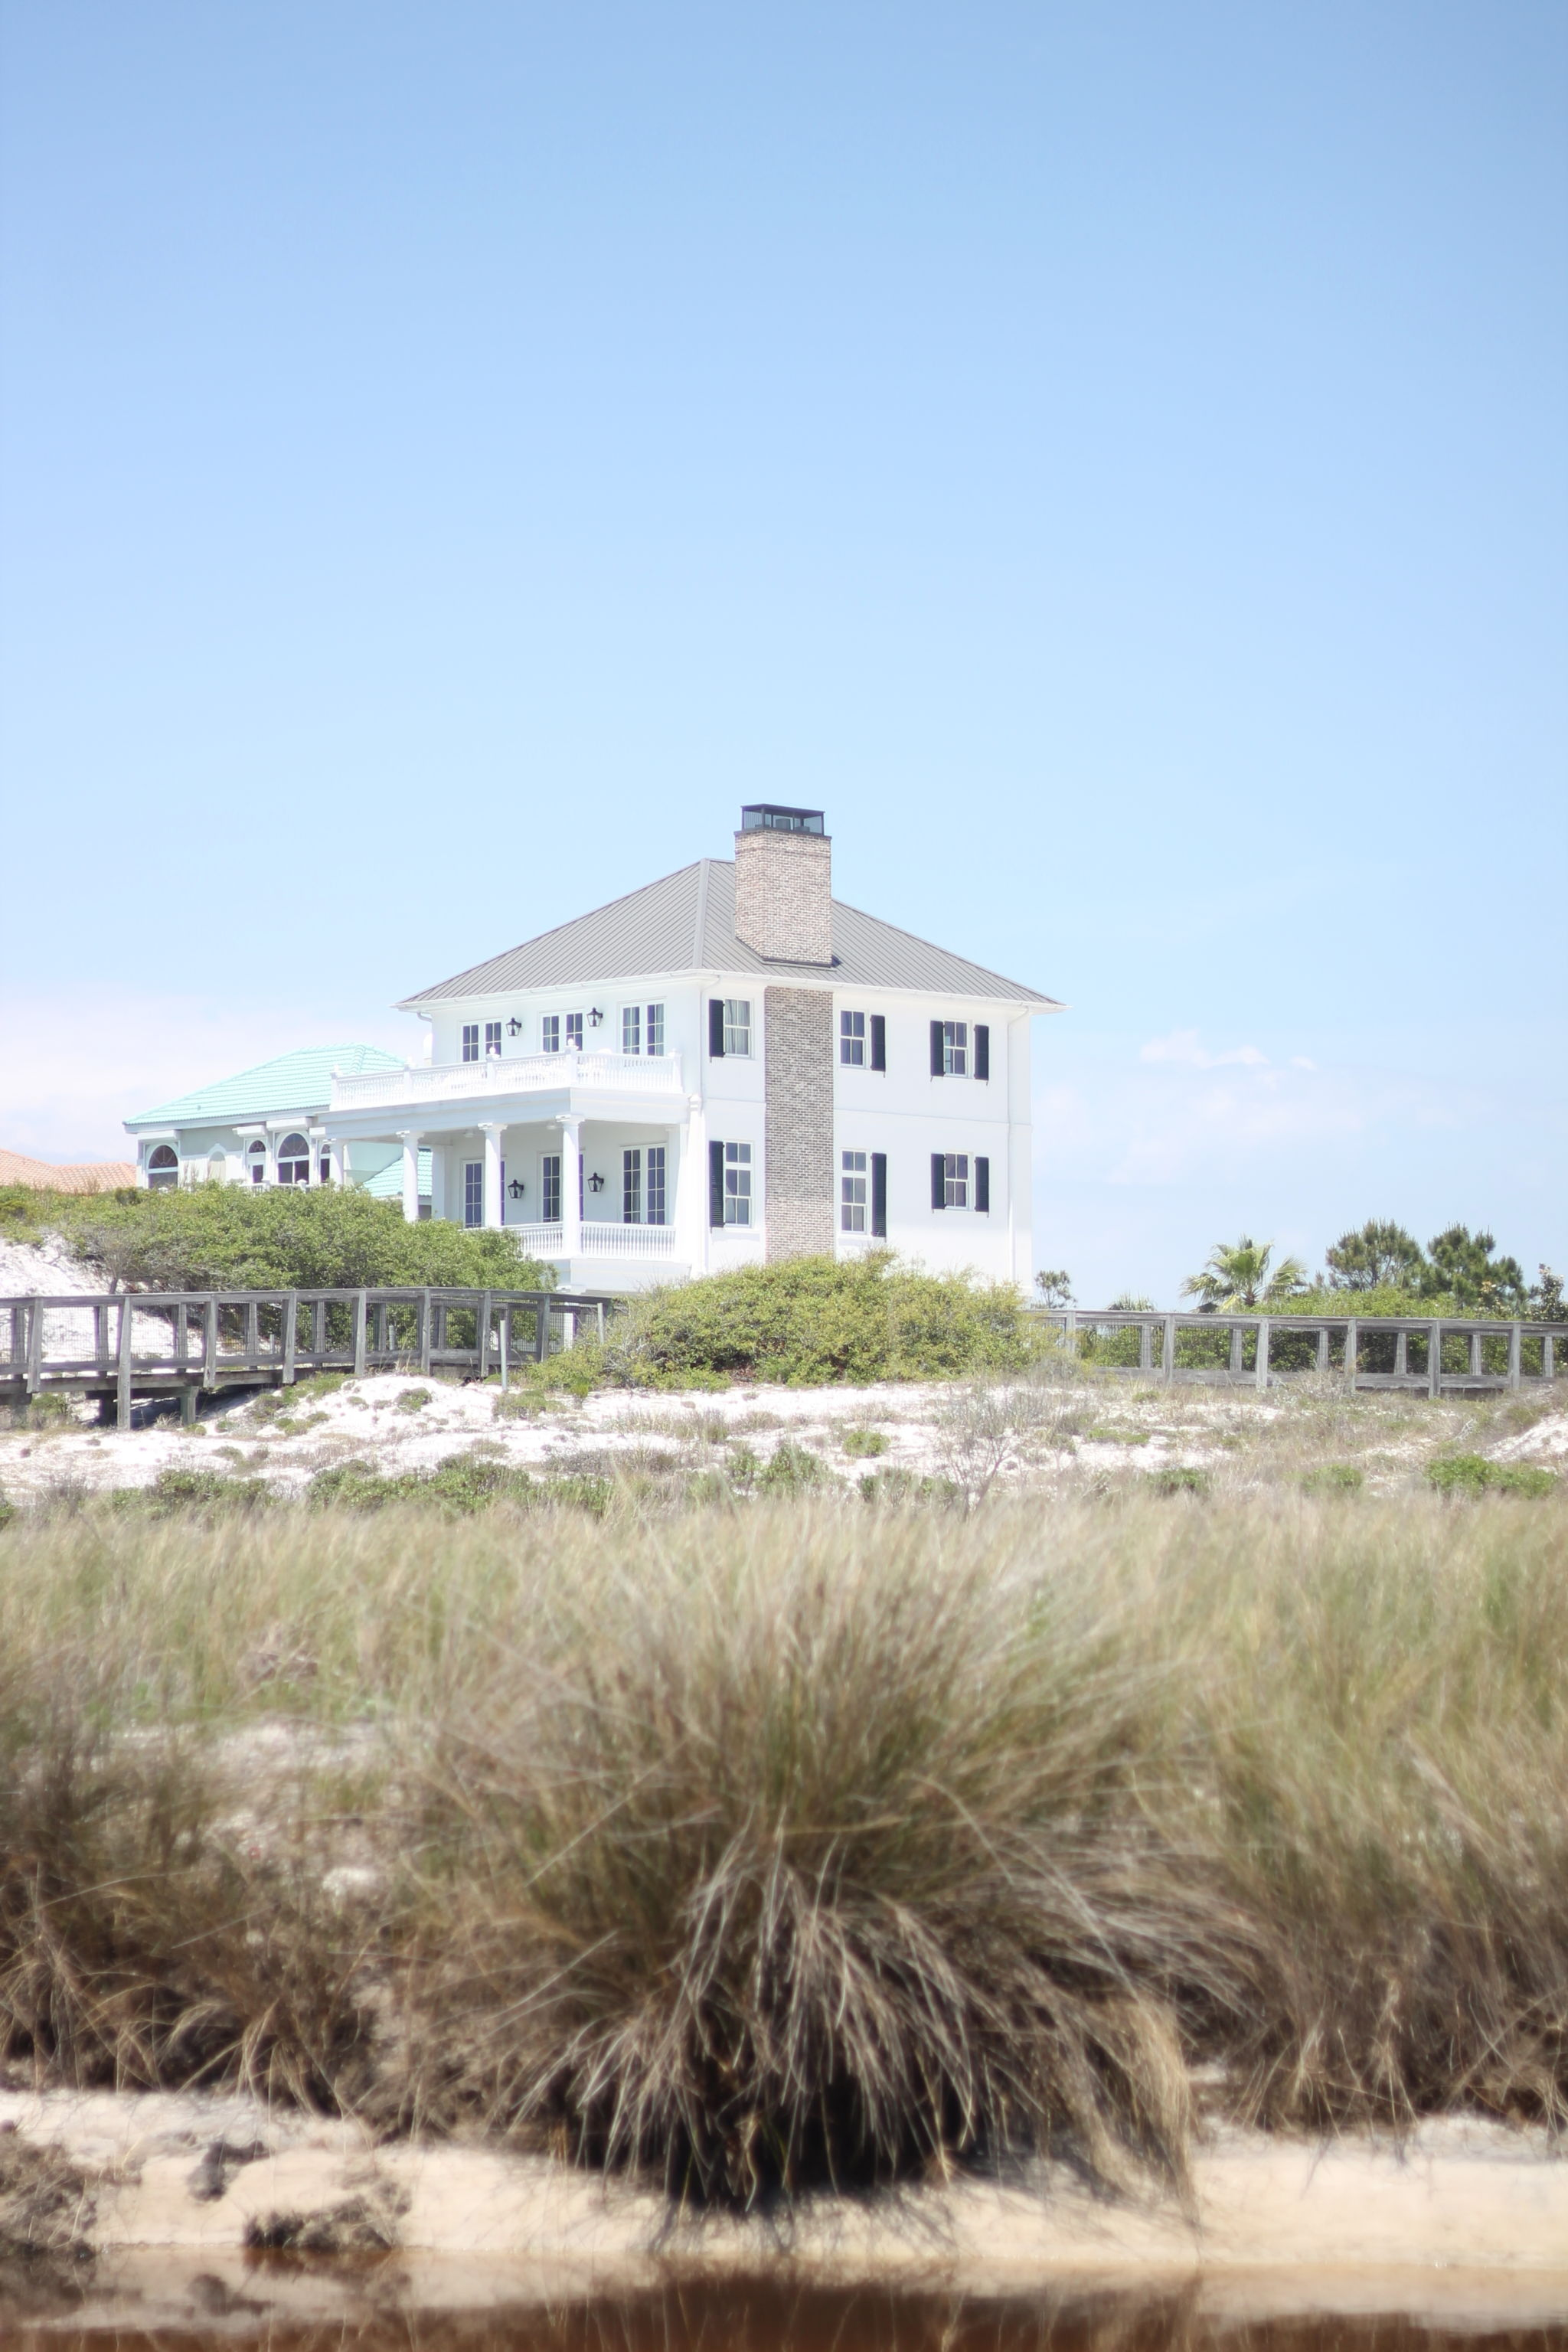 30A Seagrove Vacation Home